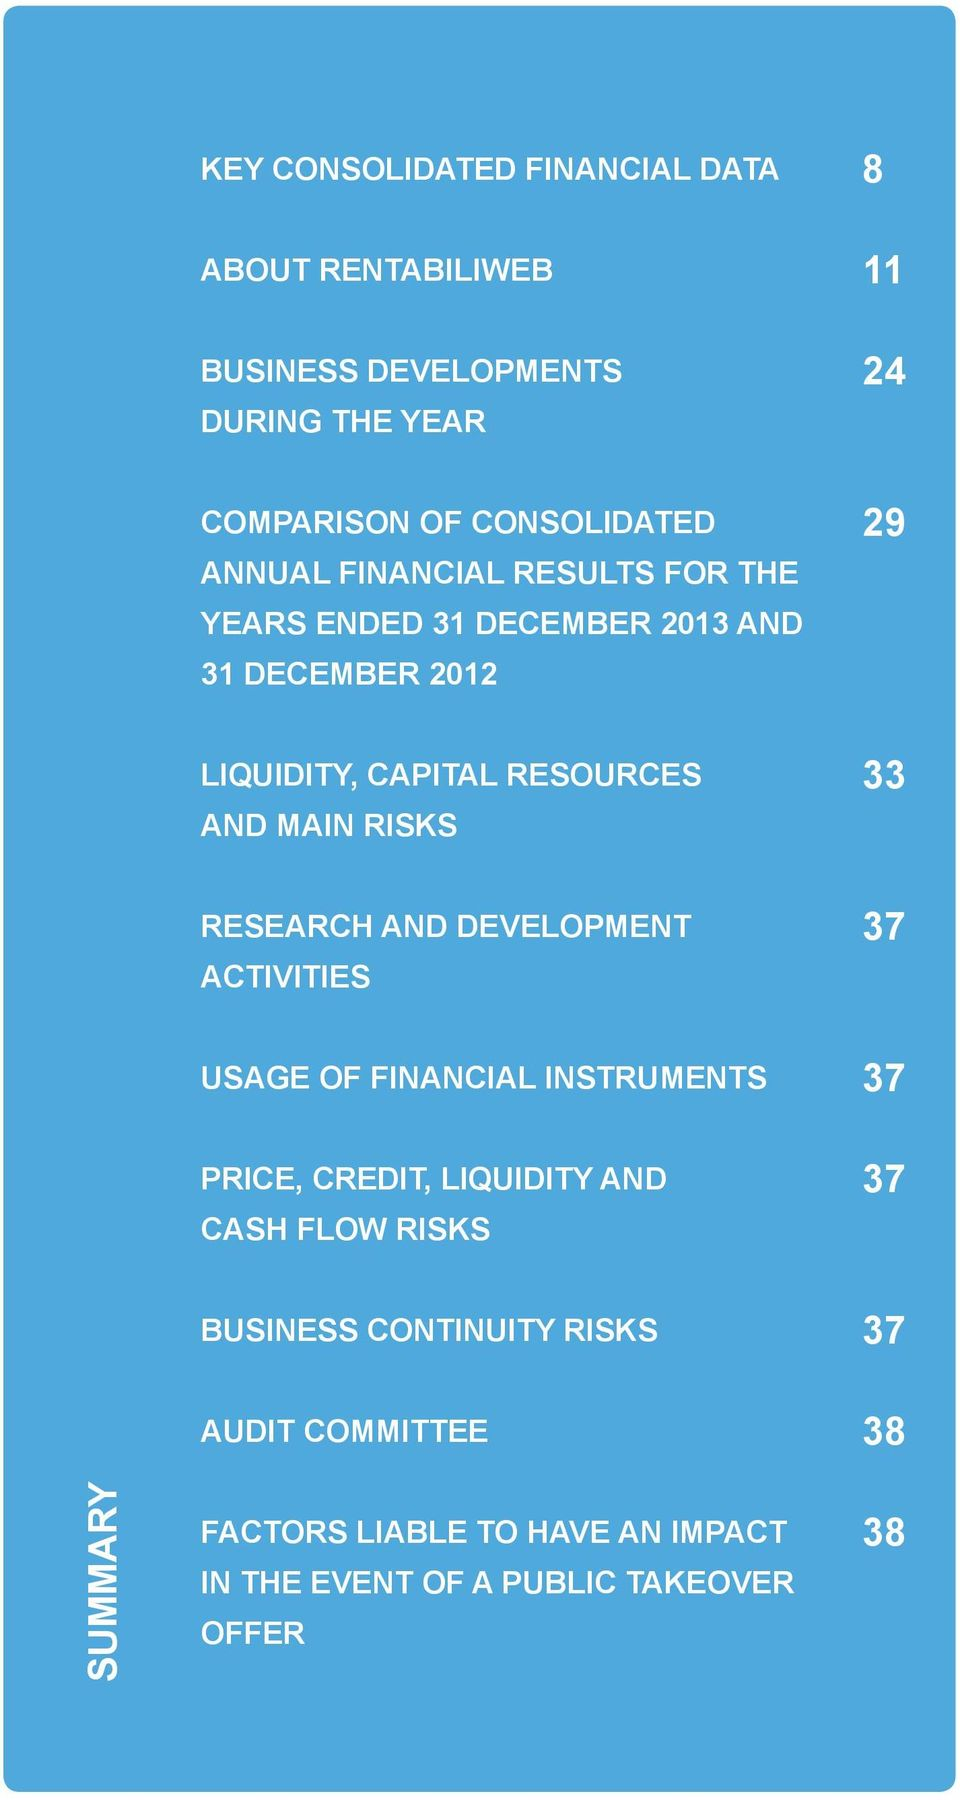 RISKS 33 RESEARCH AND DEVELOPMENT ACTIVITIES 37 USAGE OF FINANCIAL INSTRUMENTS 37 PRICE, CREDIT, LIQUIDITY AND CASH FLOW RISKS